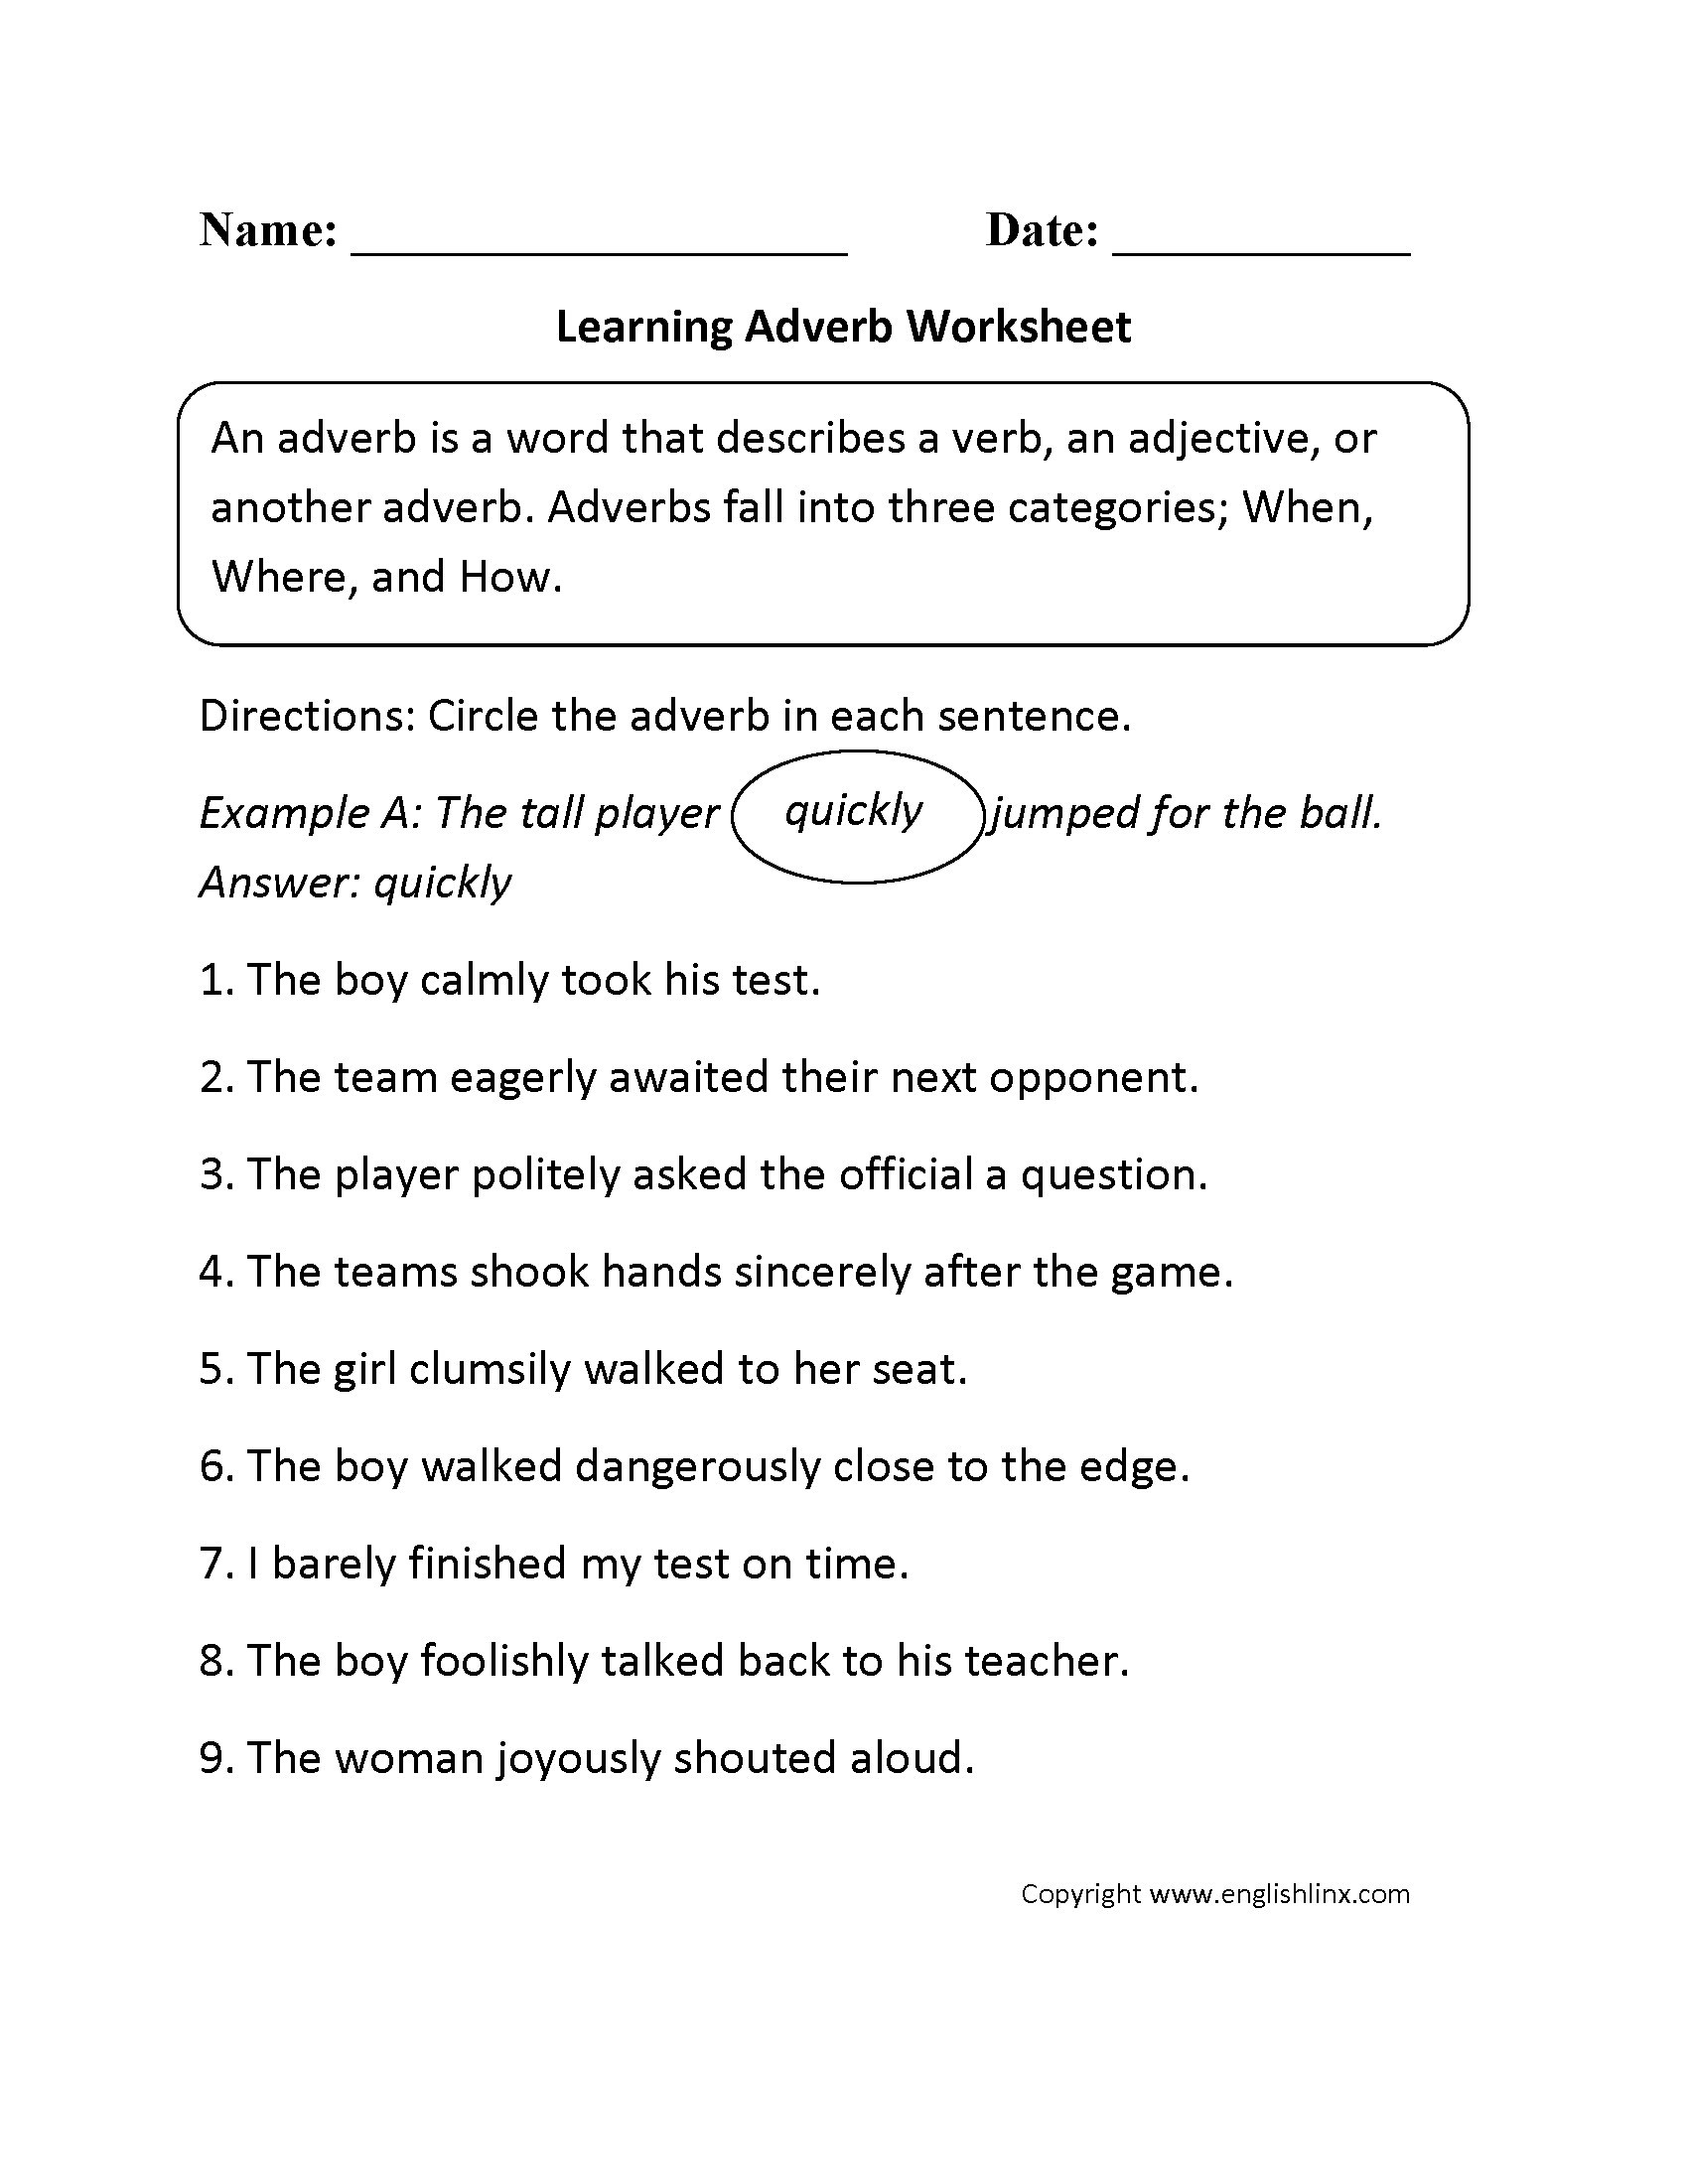 Volume Worksheets 3rd Grade Adding Improper Fractions Worksheet with Answers Merit Badge